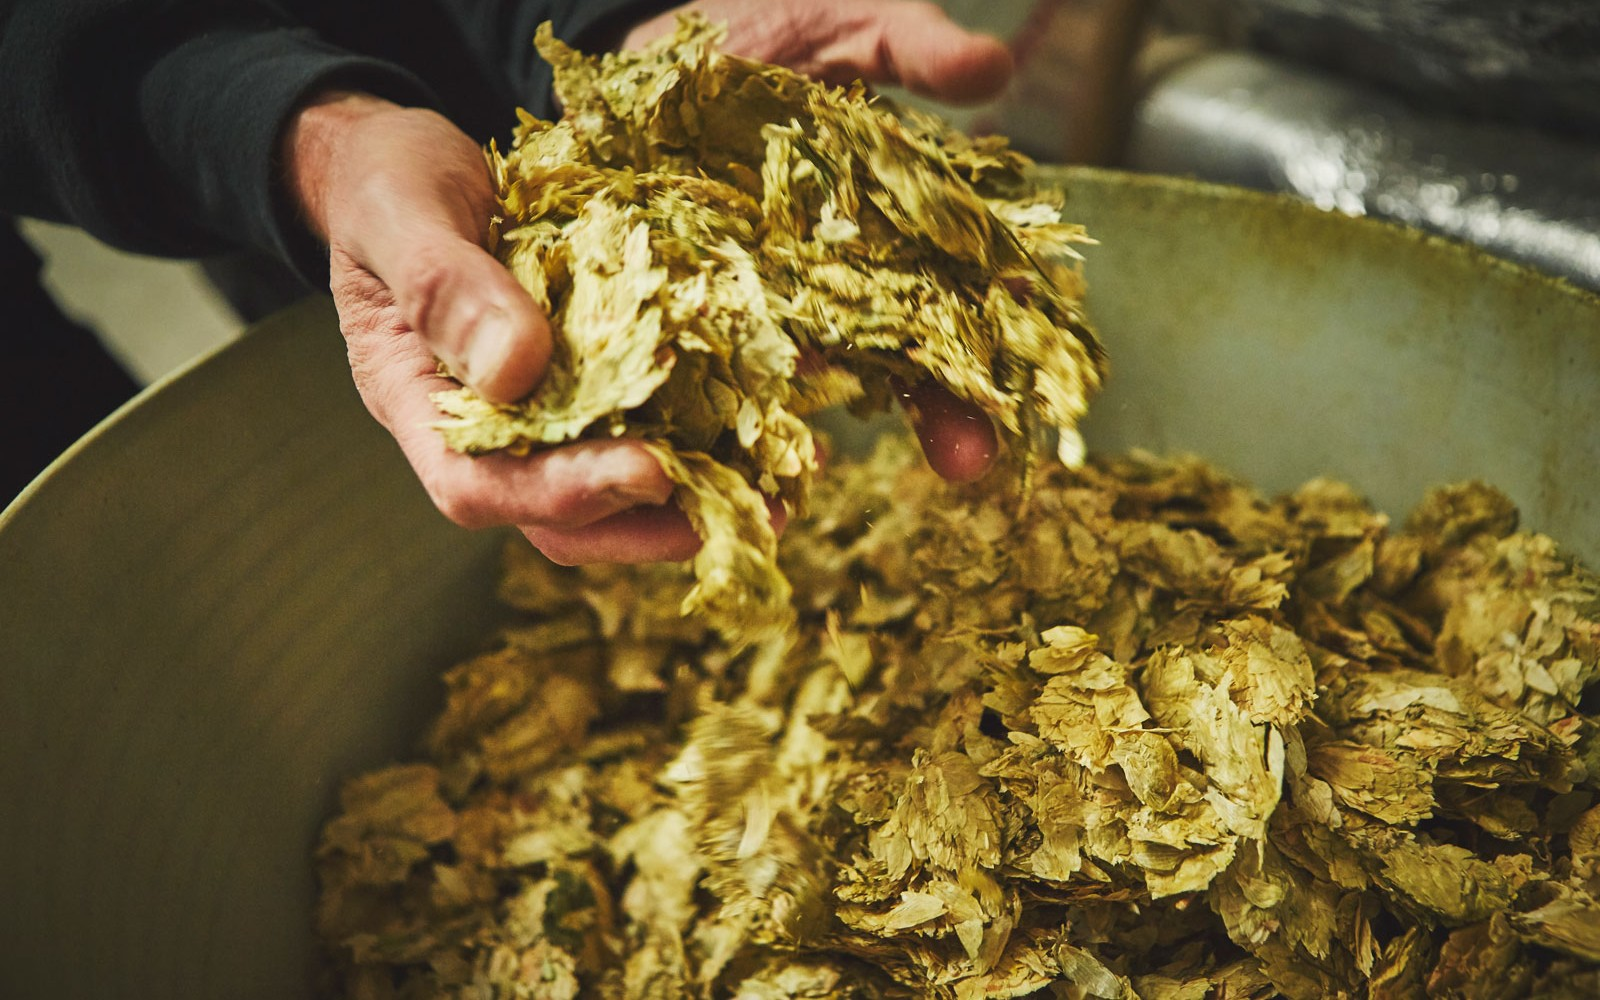 hops-in-hands-skinners-brewery-1600x1000-c-default.jpg